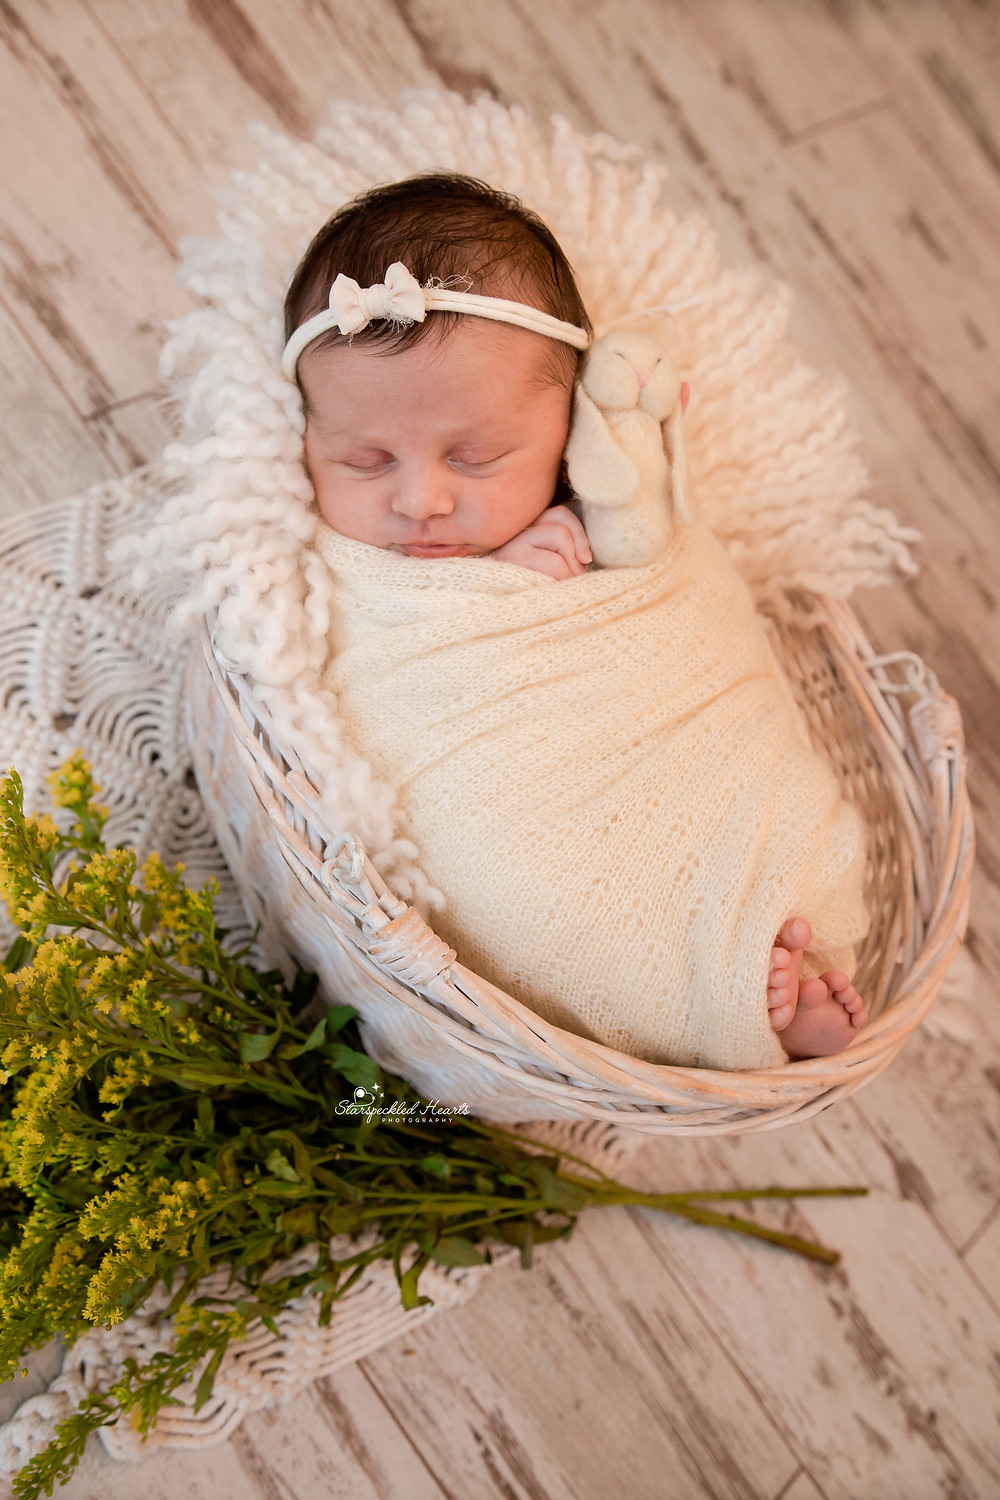 sleeping newborn baby girl lying in a wicker basket surrounded by yellow flowers